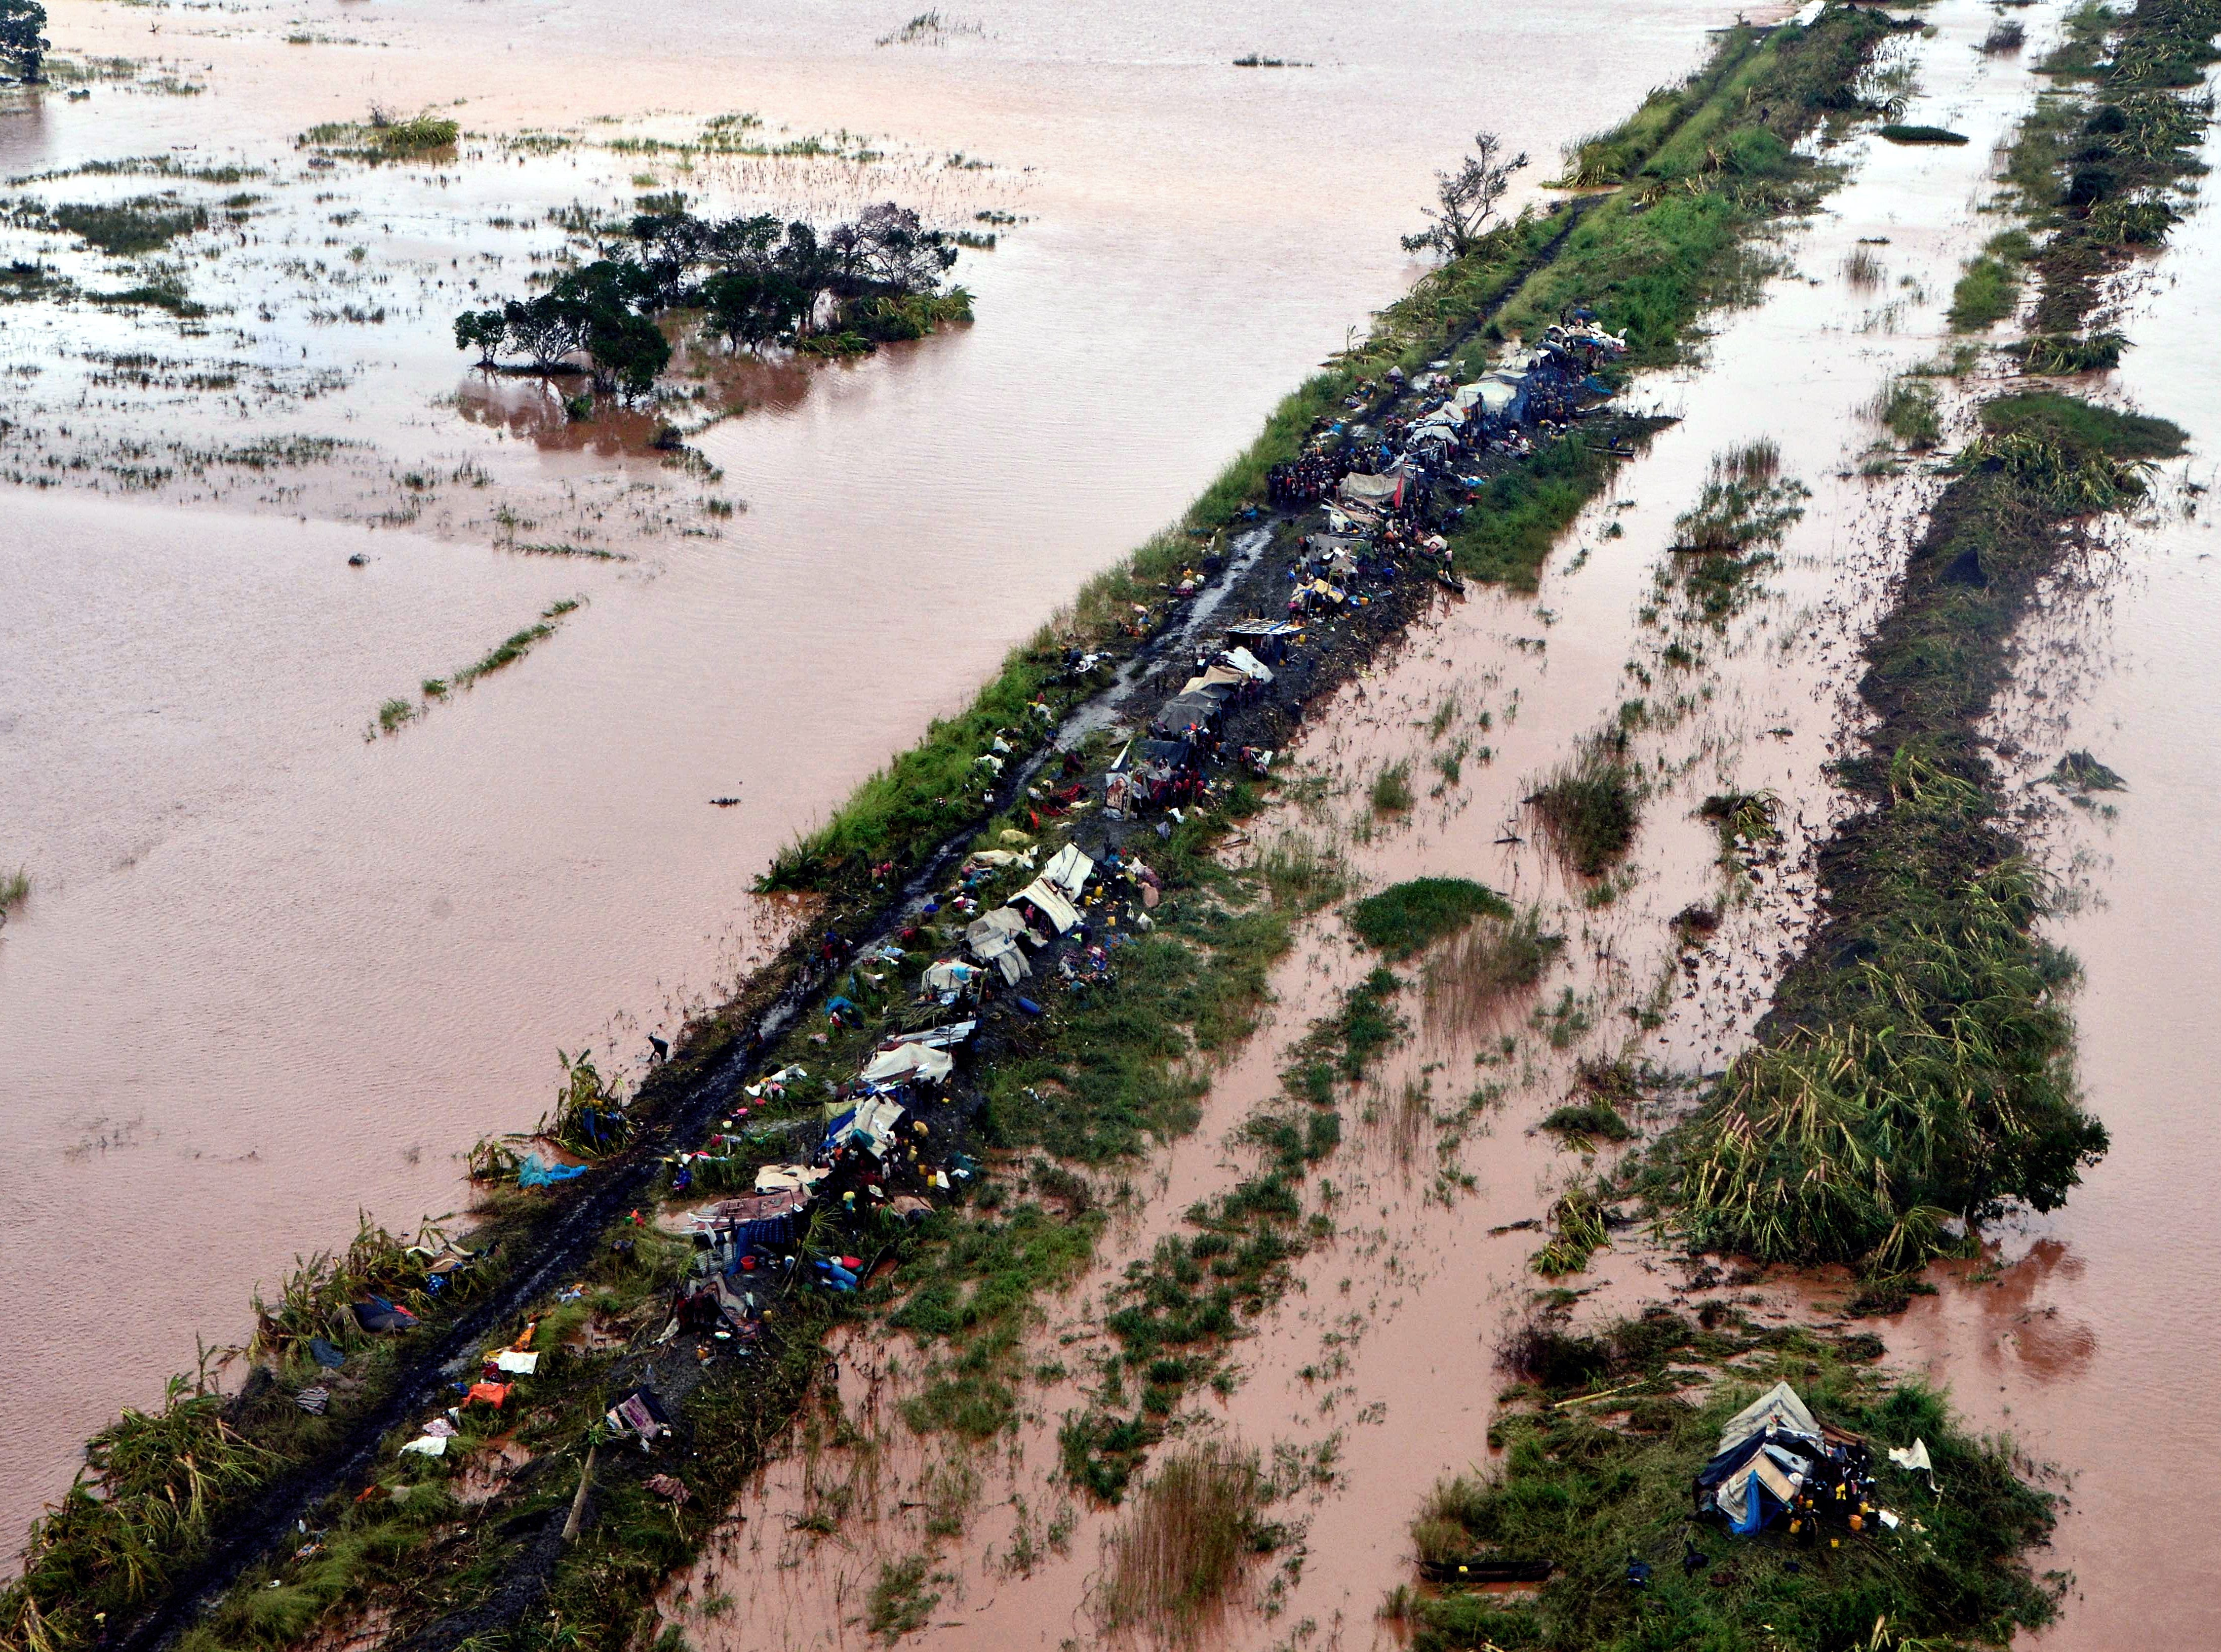 An aerial view shows damage from the flood waters after Cyclone Idai made landfall in Sofala Province, Central Mozambique. Authorities fear the number of people dead could be more than 1,000, and hundreds are still missing in Zimbabwe after the tropical cyclone, according to data from the UN Office of Humanitarian Affairs (OCHA).